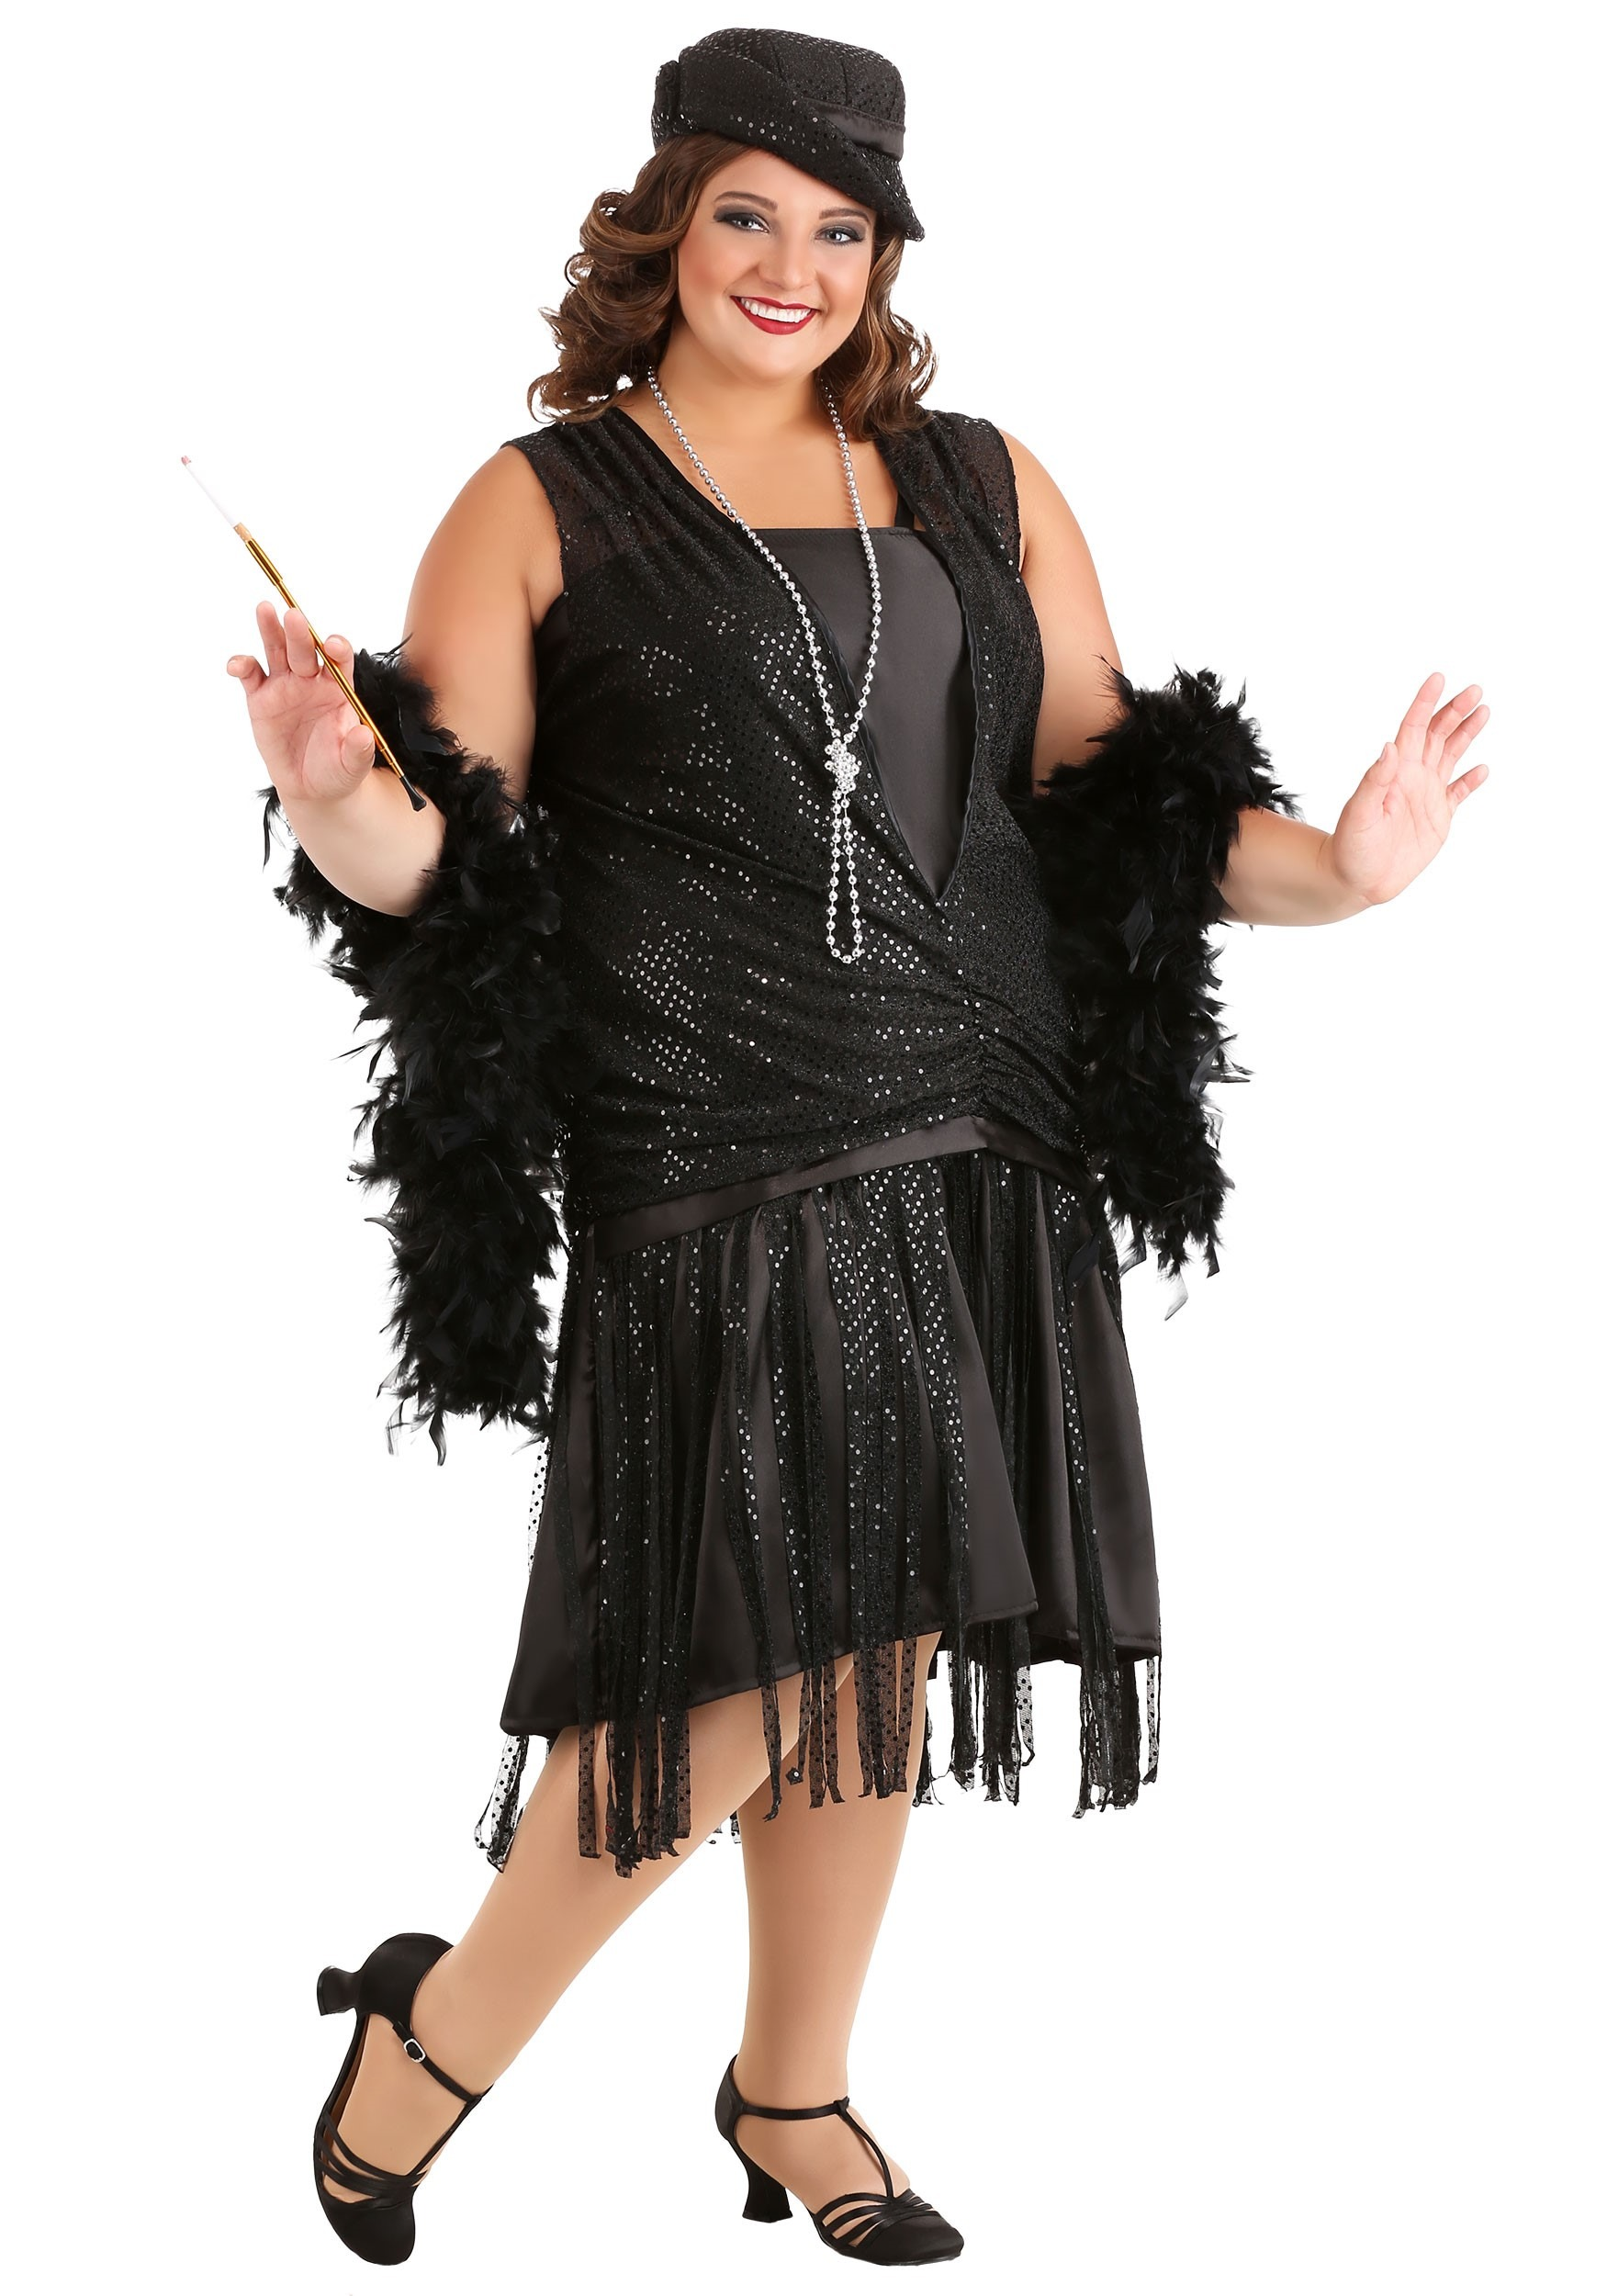 Black dress costume rentals